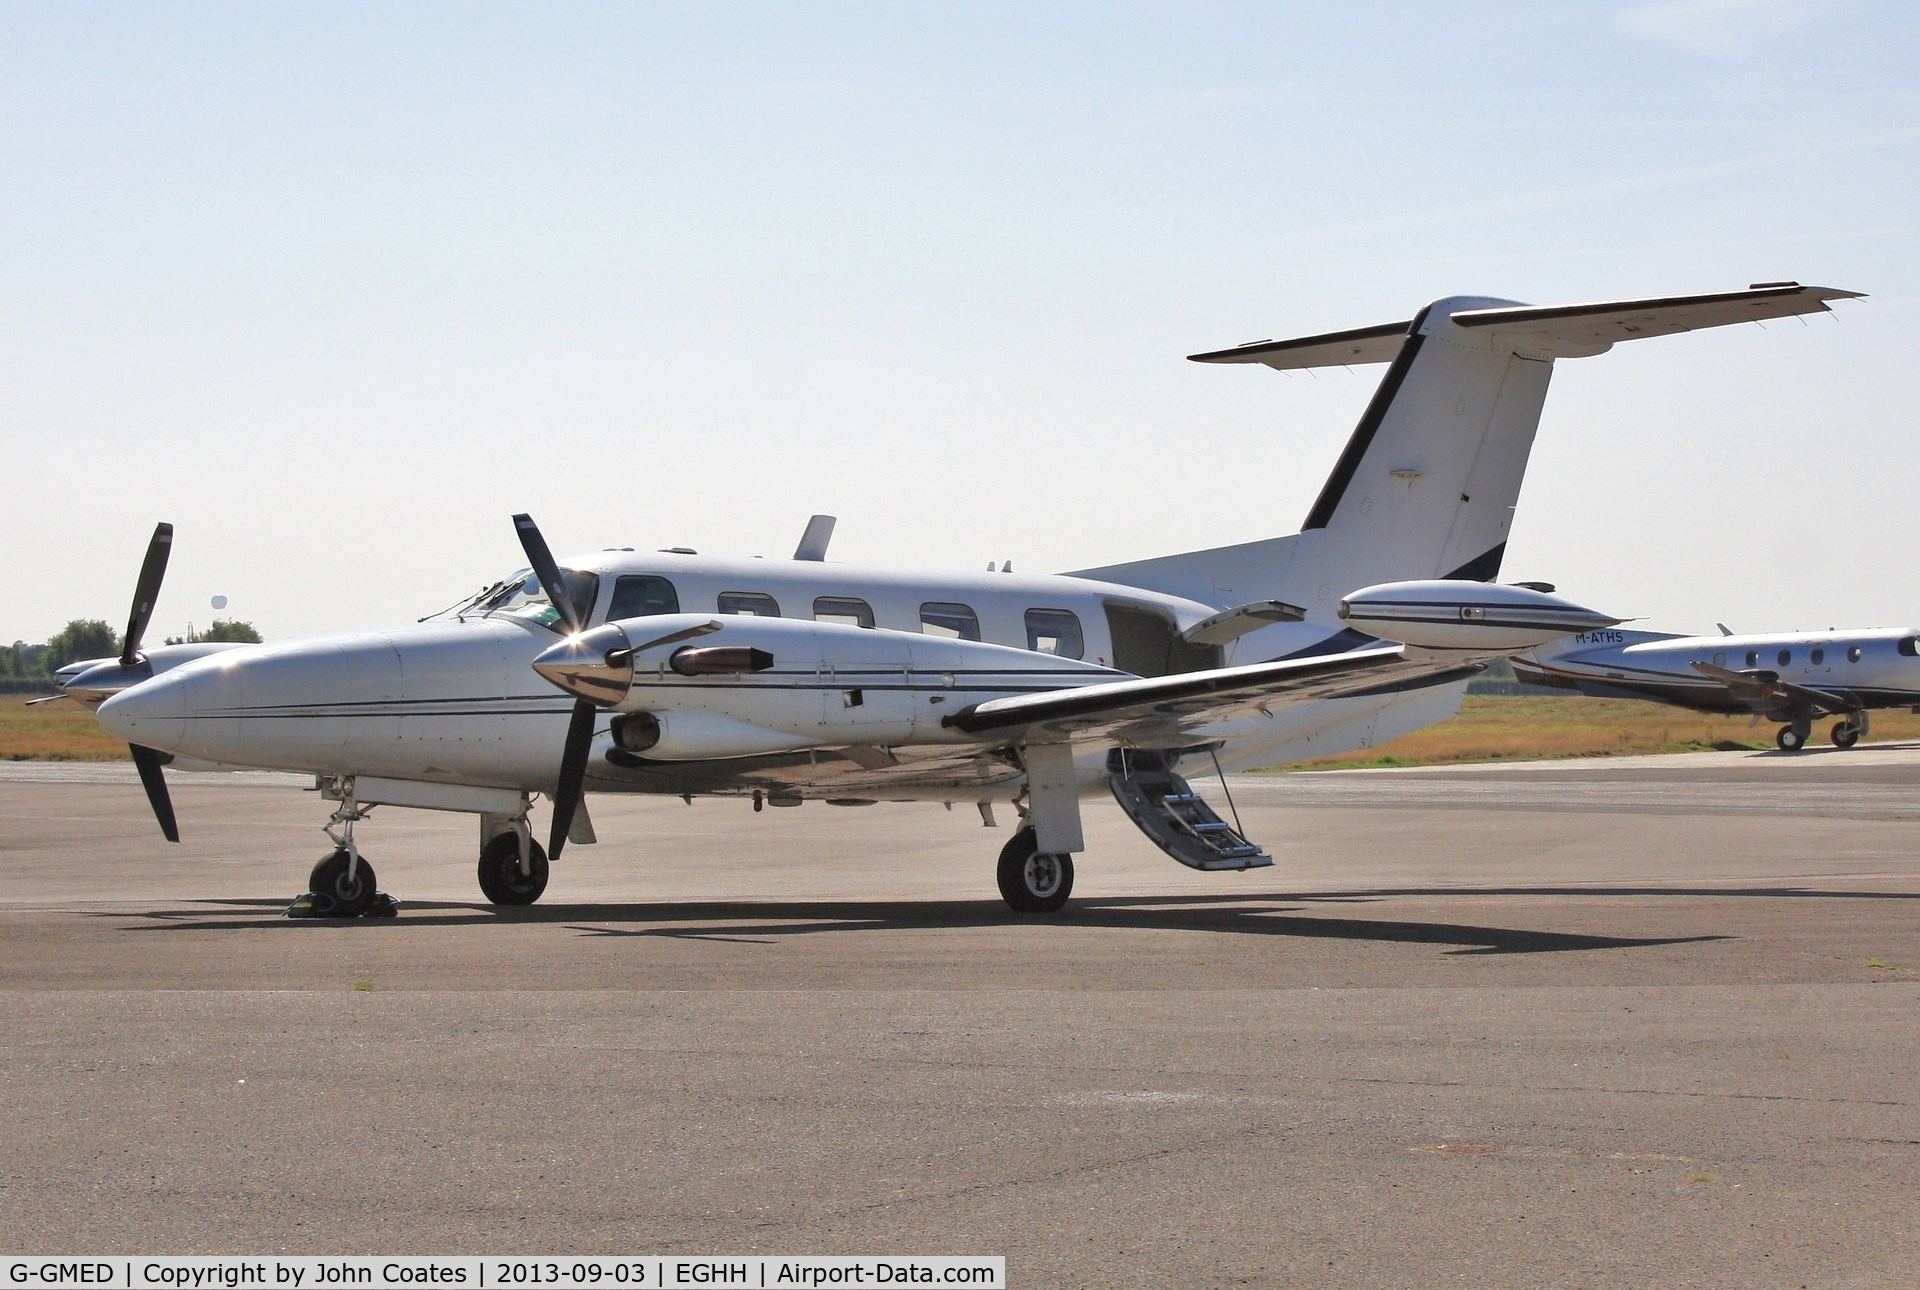 G-GMED, 1990 Piper PA-42-720 Cheyenne III C/N 42-5501050, Visiting Signatures.